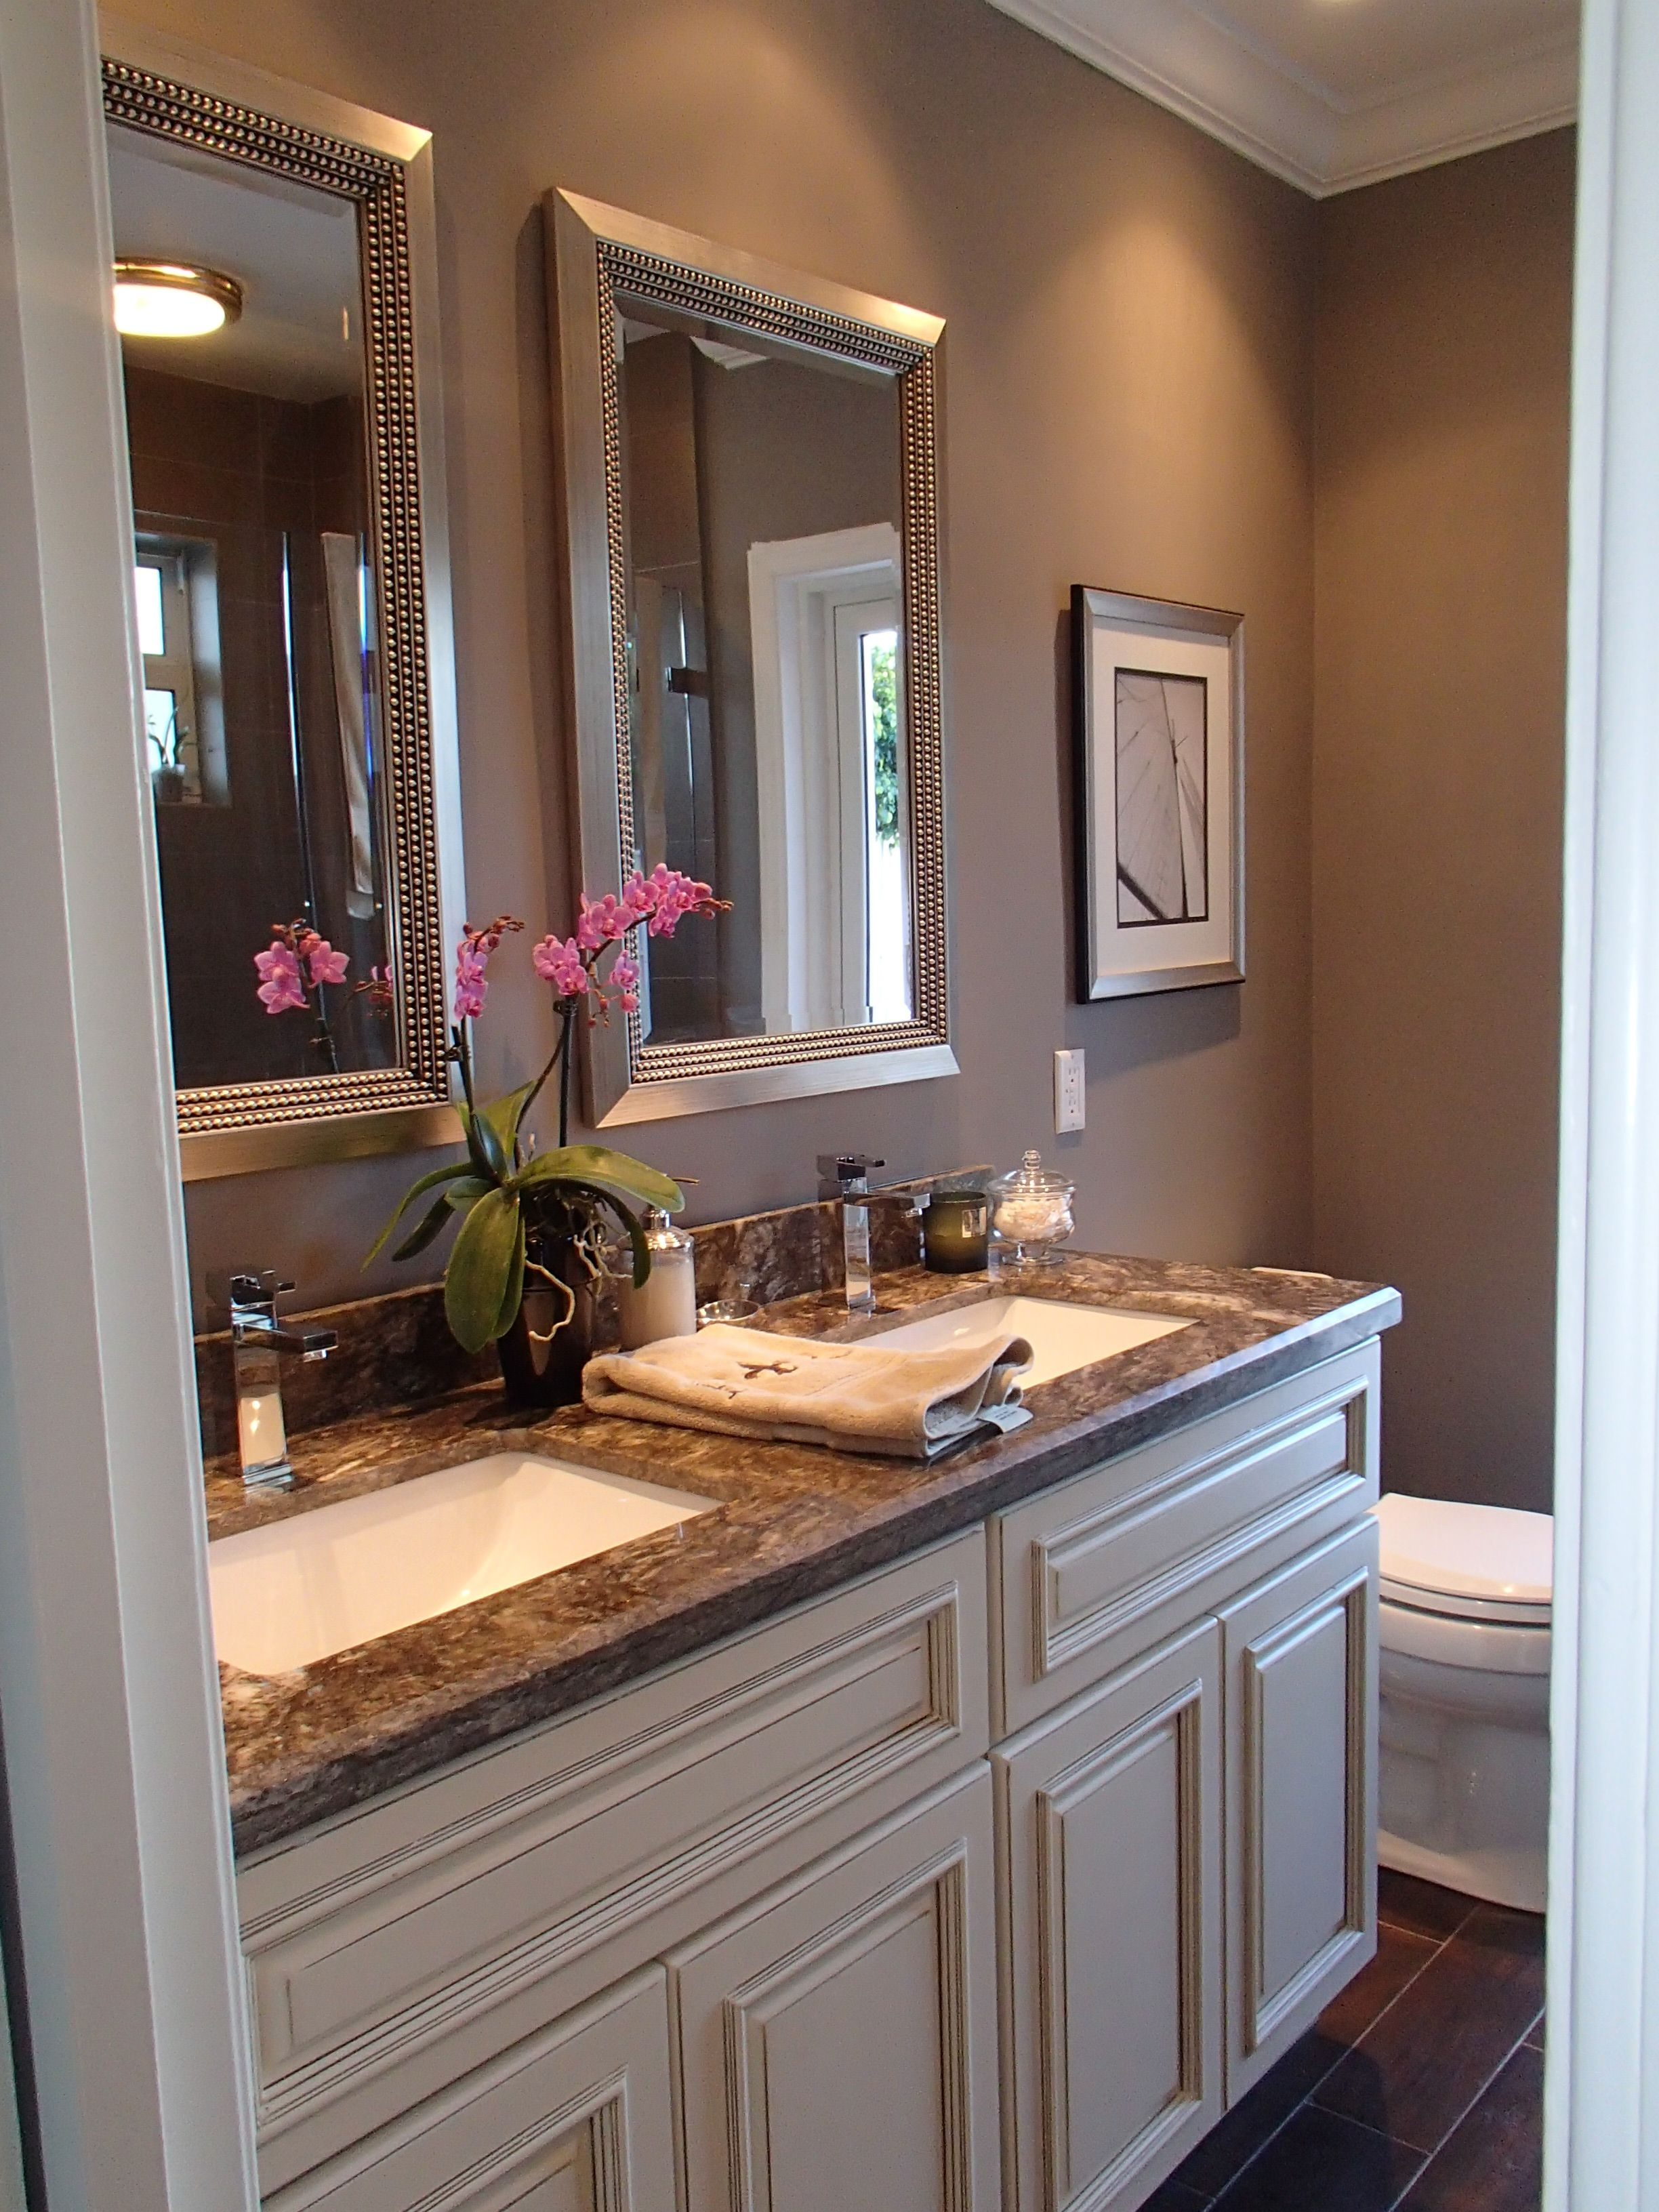 Make Your Own Vanity Make Your Own Bathroom Vanity Make Your Own Makeup Vanity Home Design